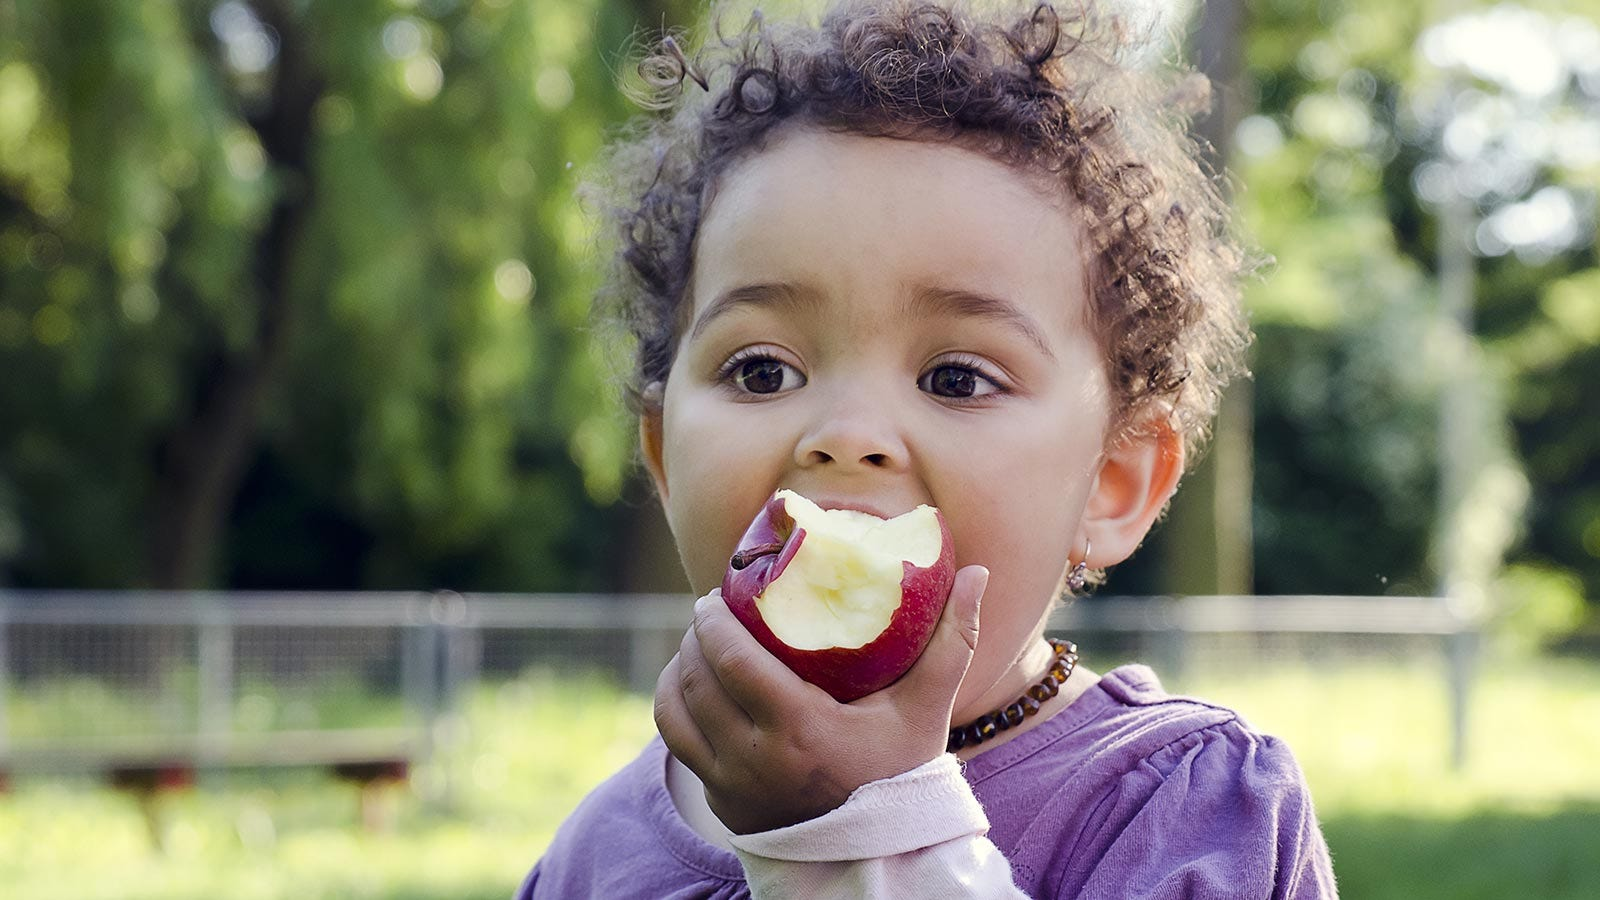 A young girl enjoying an apple as a healthy snack while playing at the park.